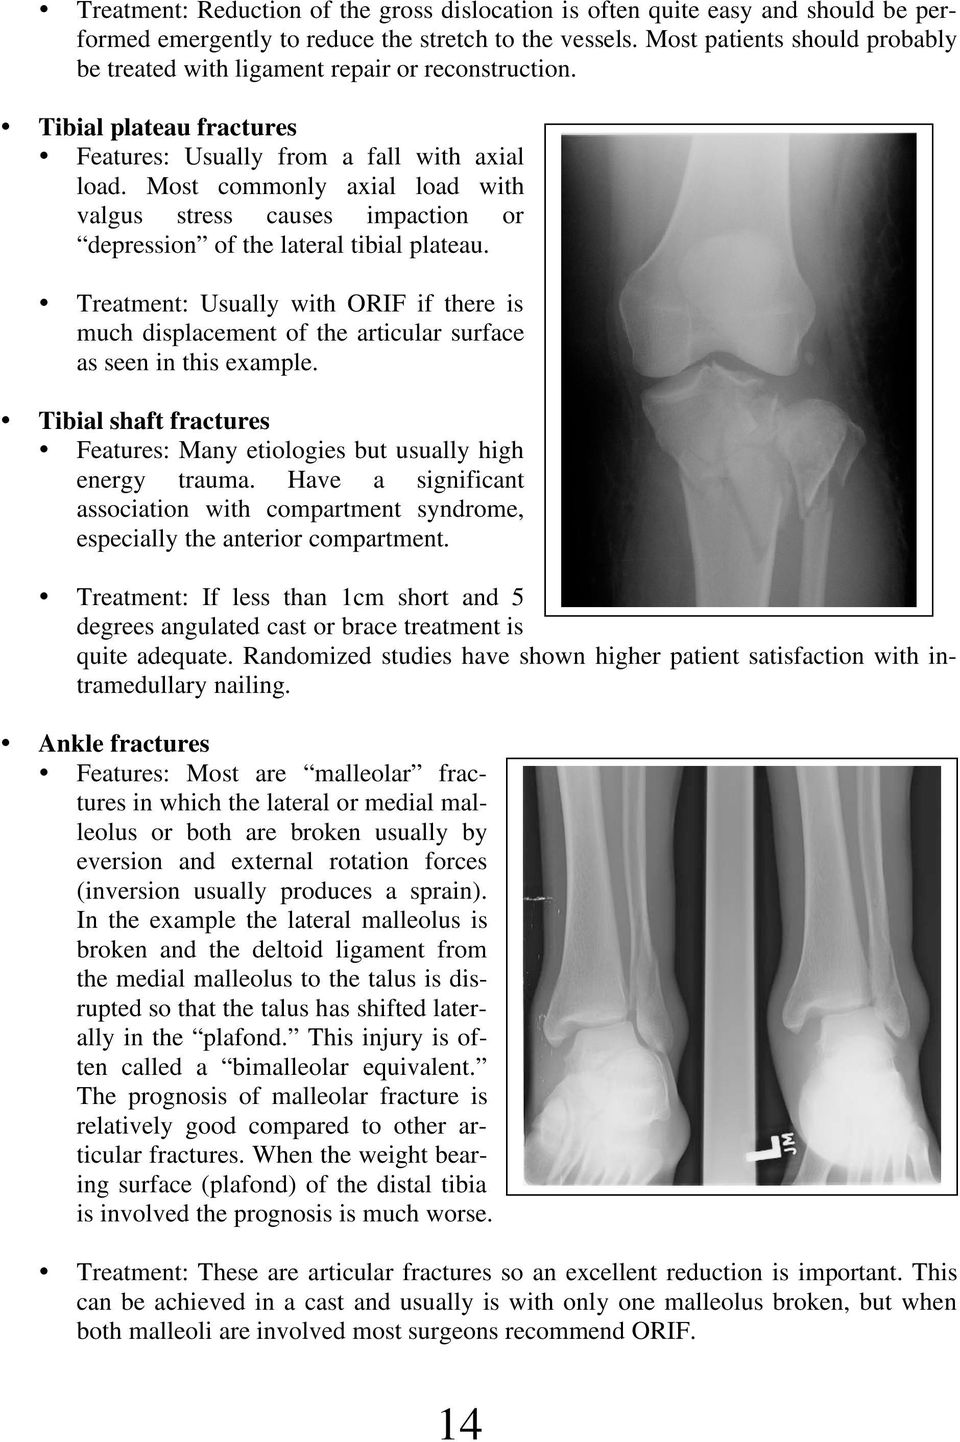 Most commonly axial load with valgus stress causes impaction or depression of the lateral tibial plateau.